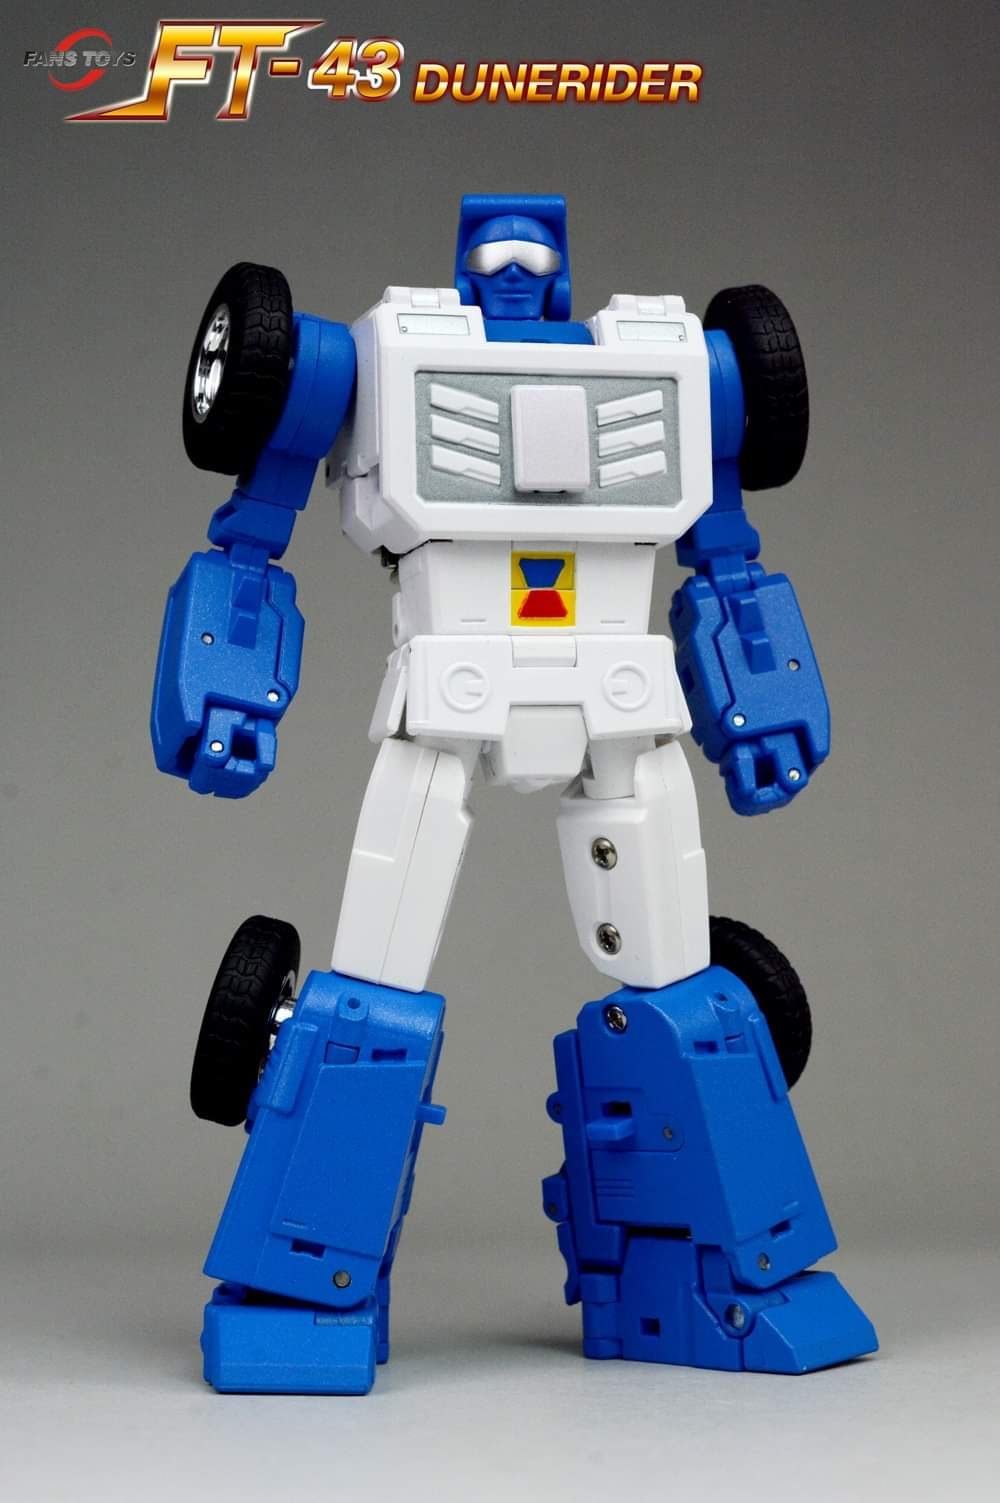 [Fanstoys] Produit Tiers - Minibots MP - Gamme FT - Page 3 Ddh6uO98_o